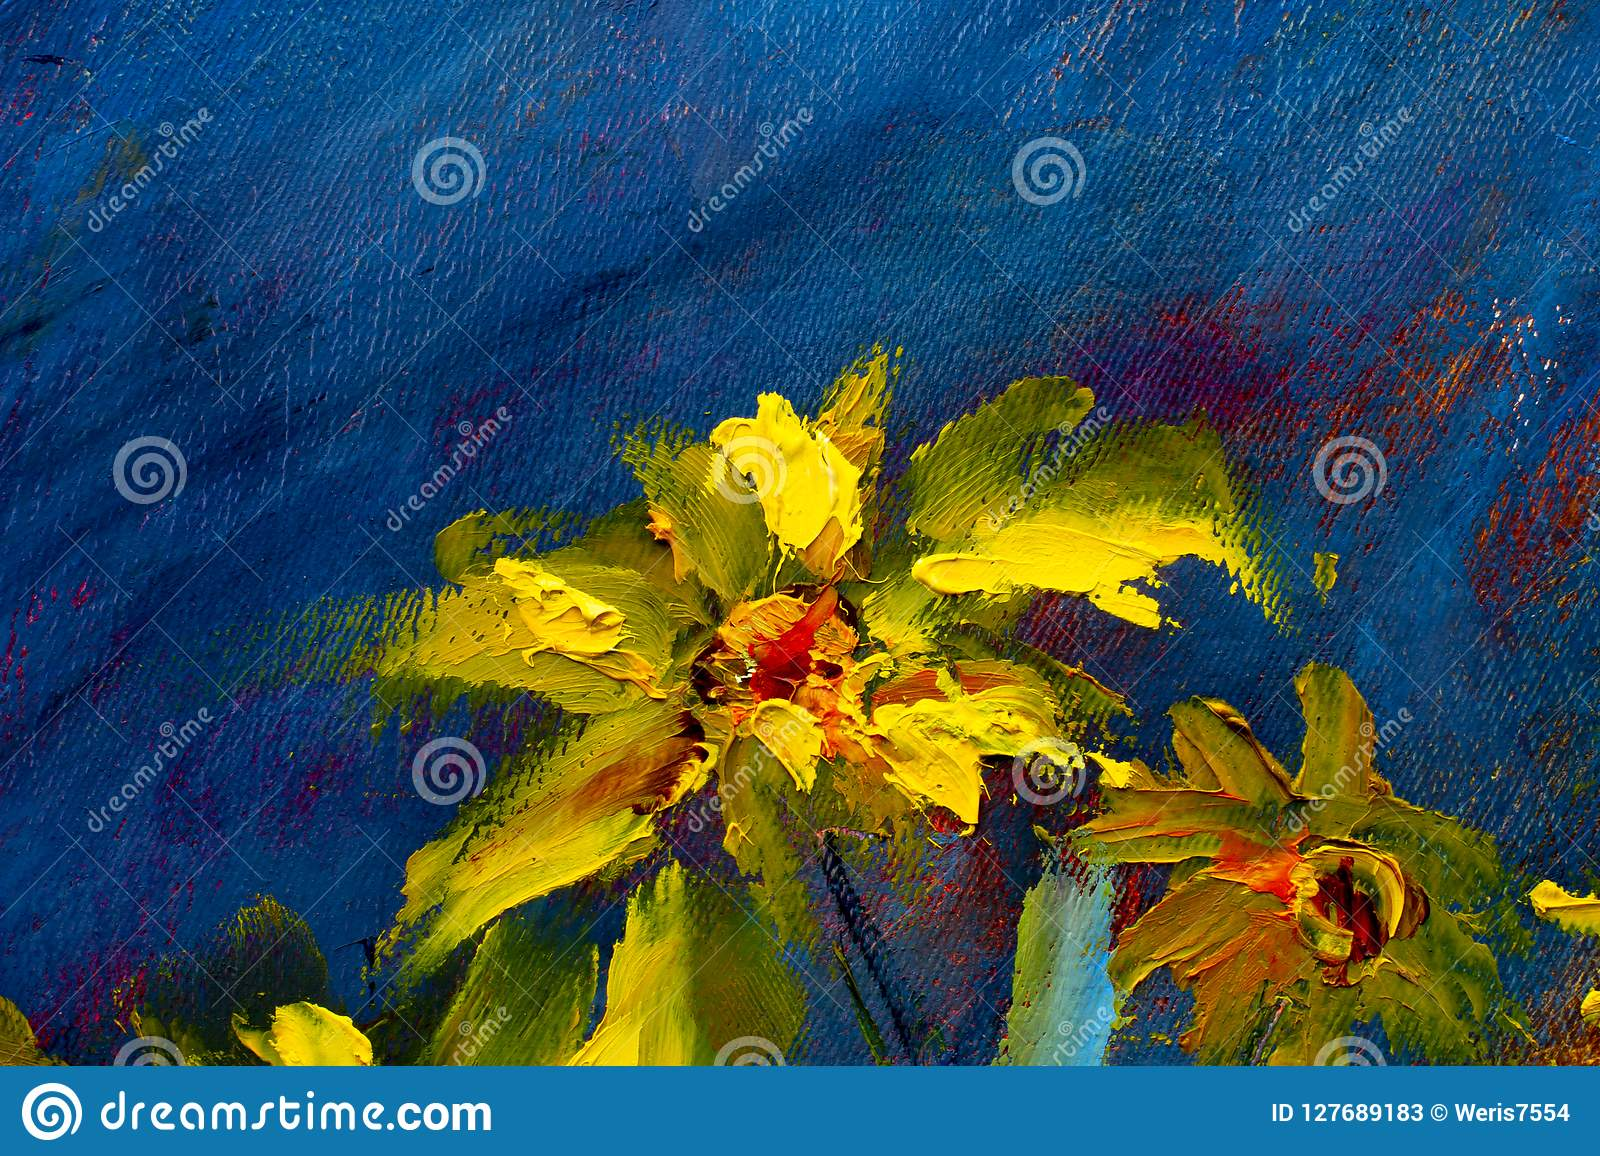 Flowers Painting Yellow Wild Flowers Daisies Orange Sunflowers On A Blue Background Oil Paintings Landscape Impressionism Artwo Stock Image Image Of Impressionism Knife 127689183